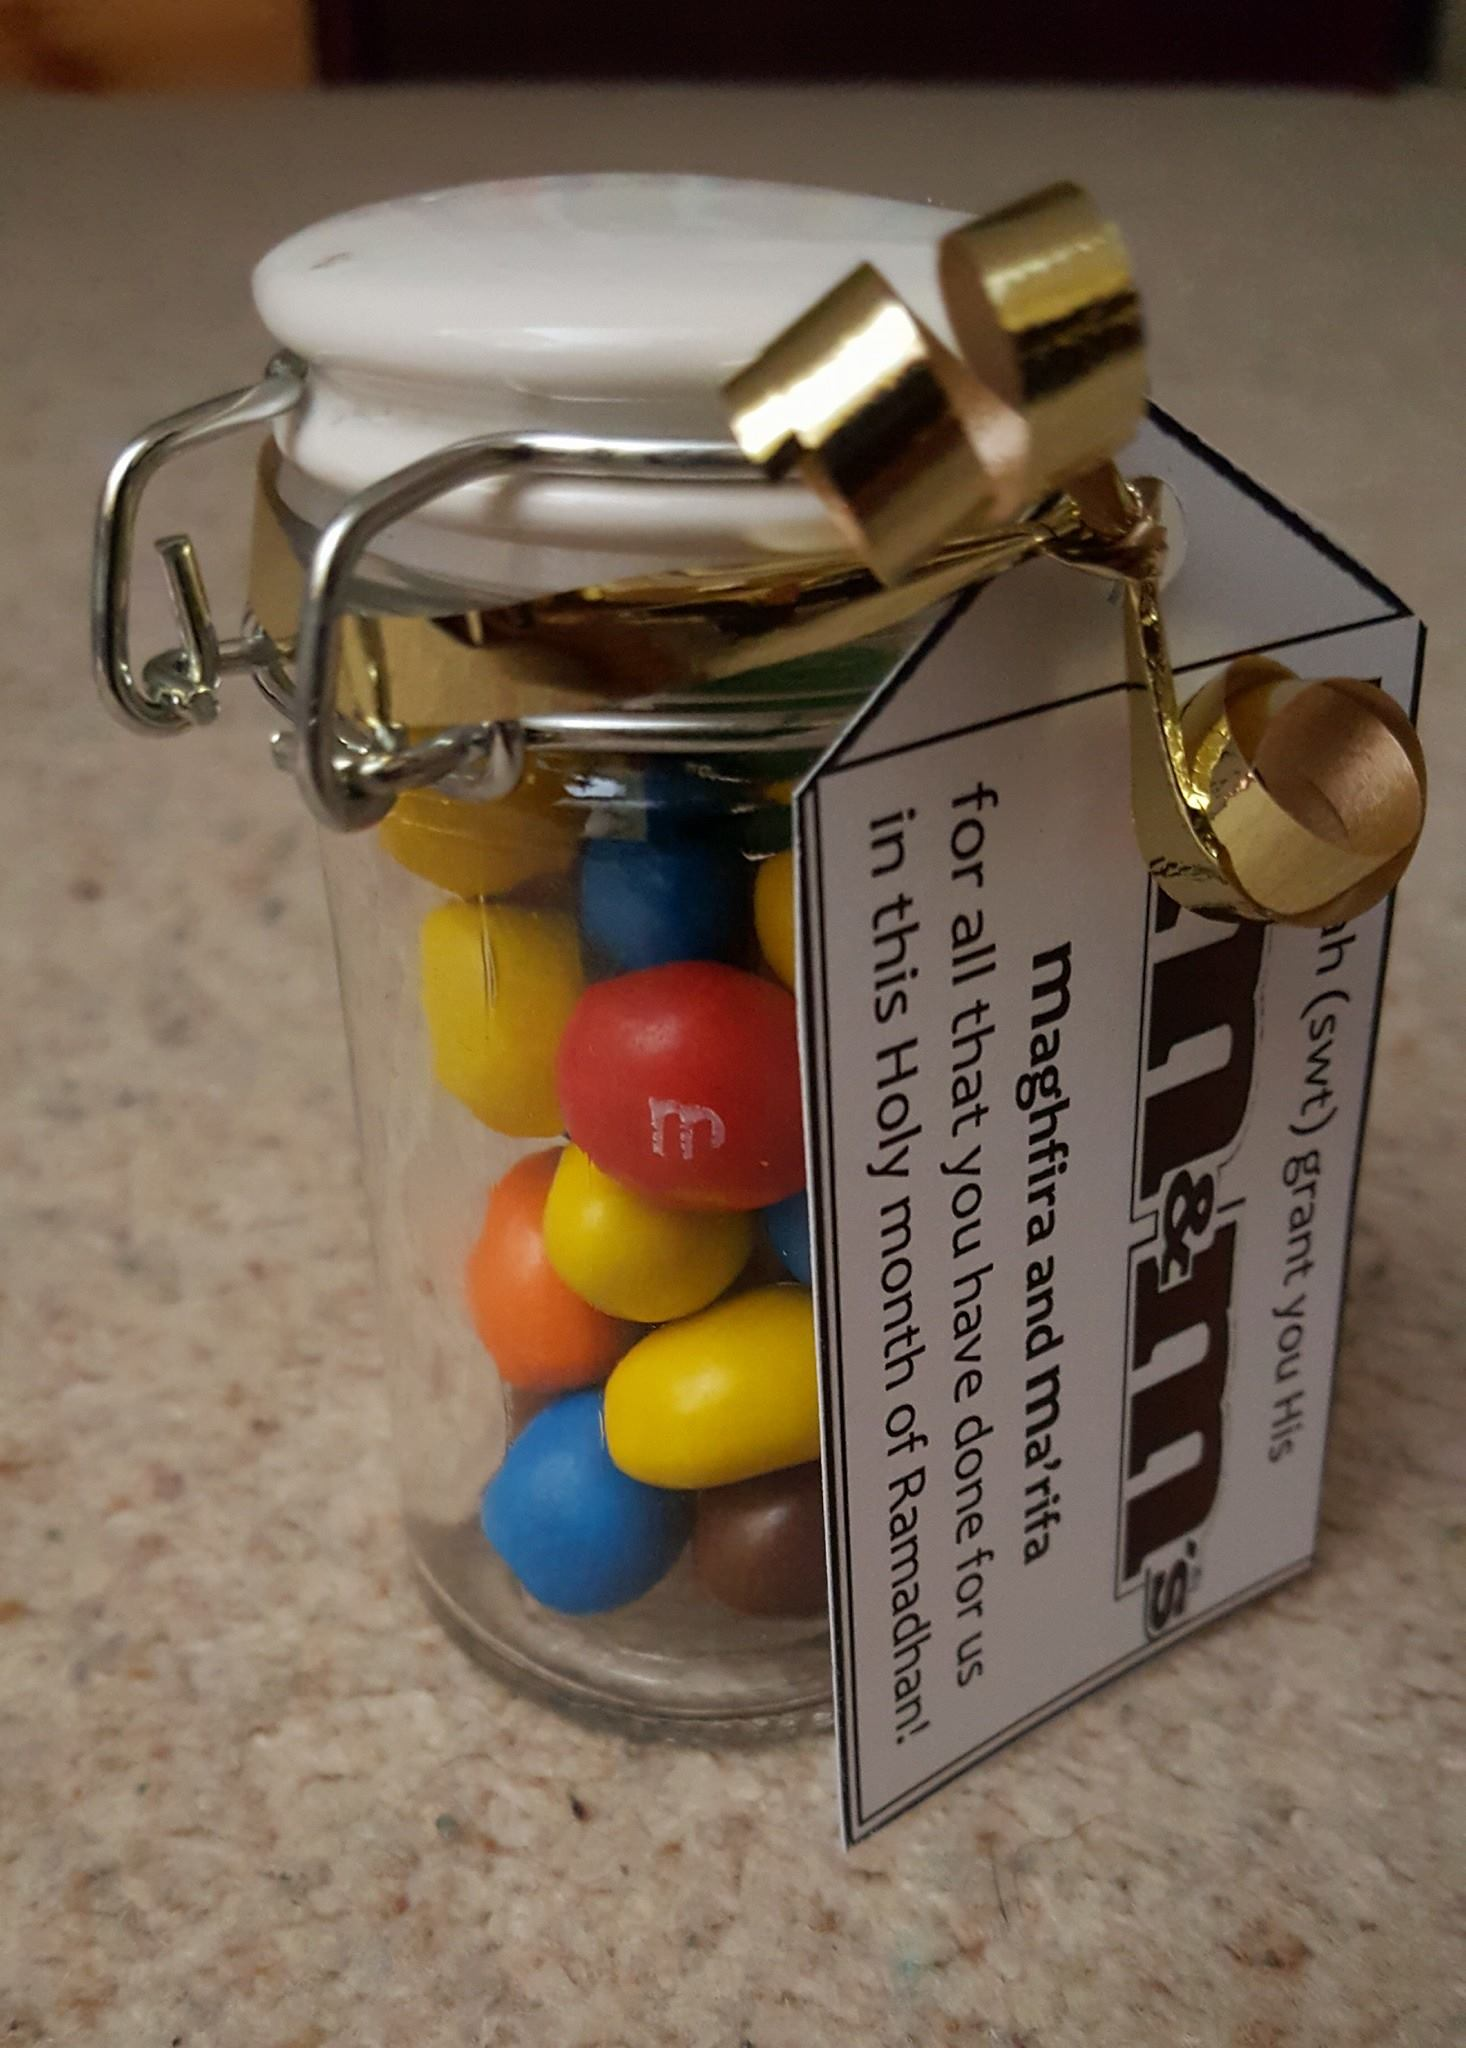 Thoughtful Gift Ideas 30: M&Ms with a twist